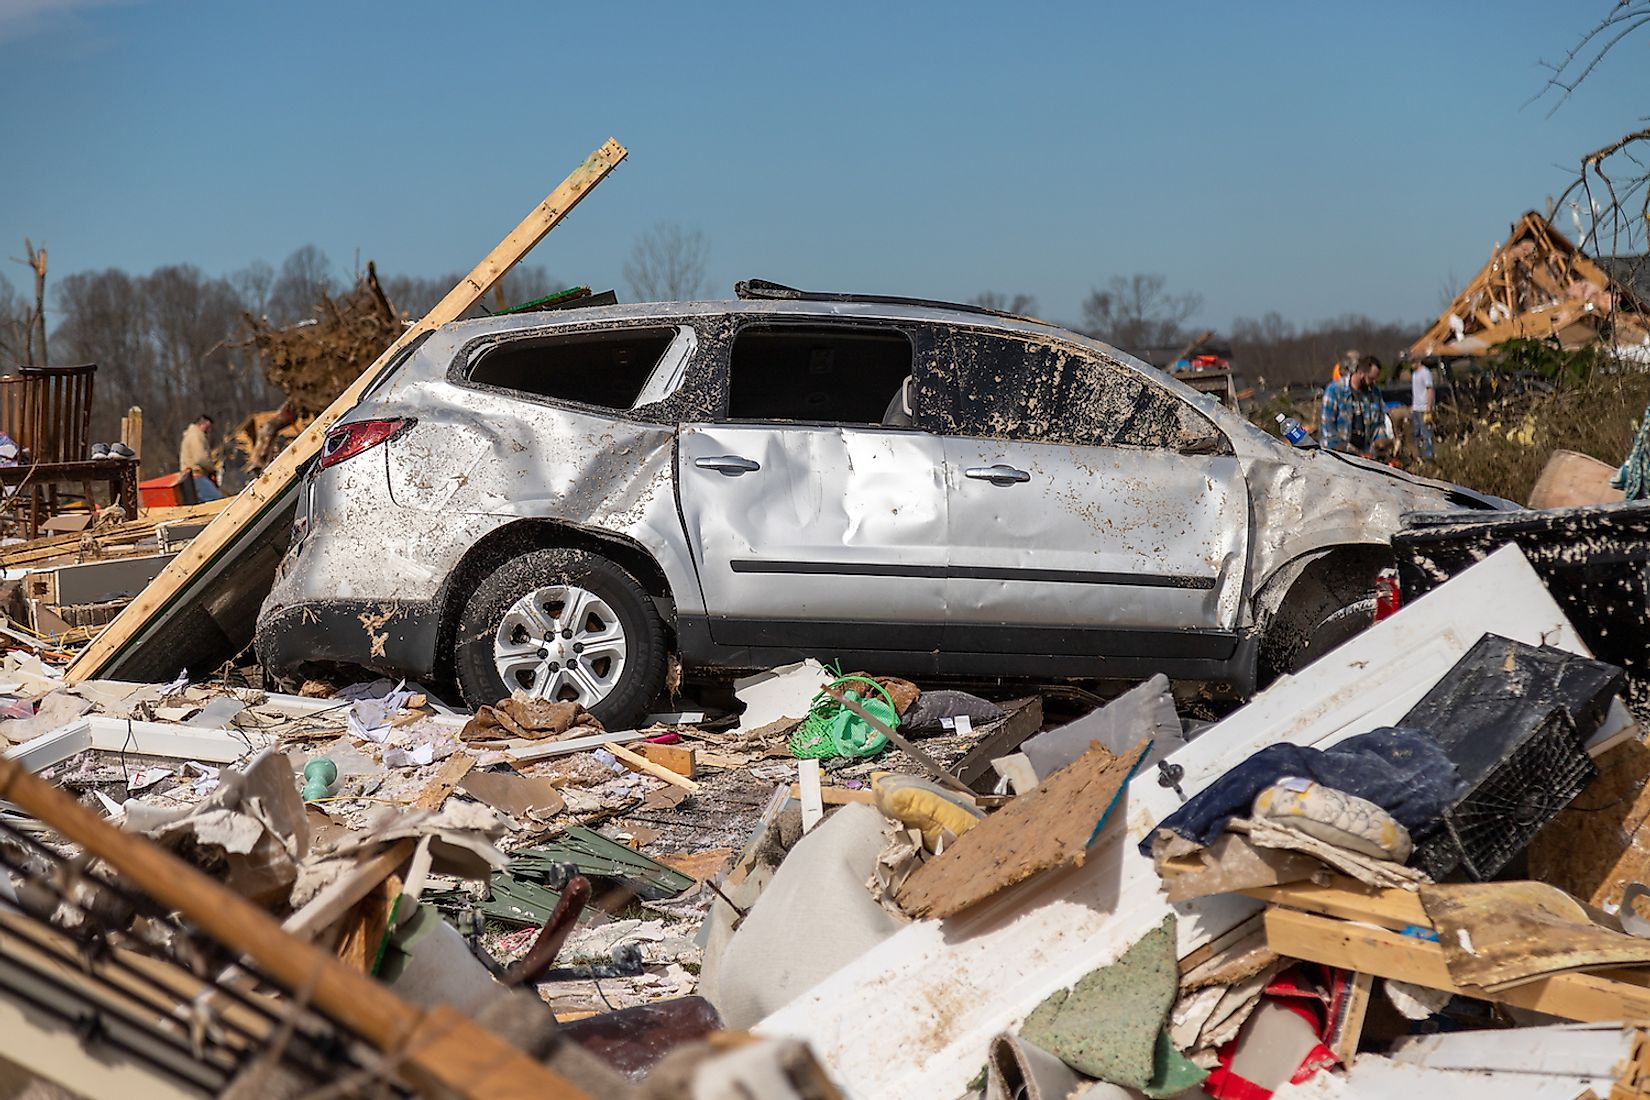 Debris is seen following a deadly tornado Wednesday, March 3, 2020, in Cookeville, Tennessee. Image credit: Jason Whitman/Shutterstock.com